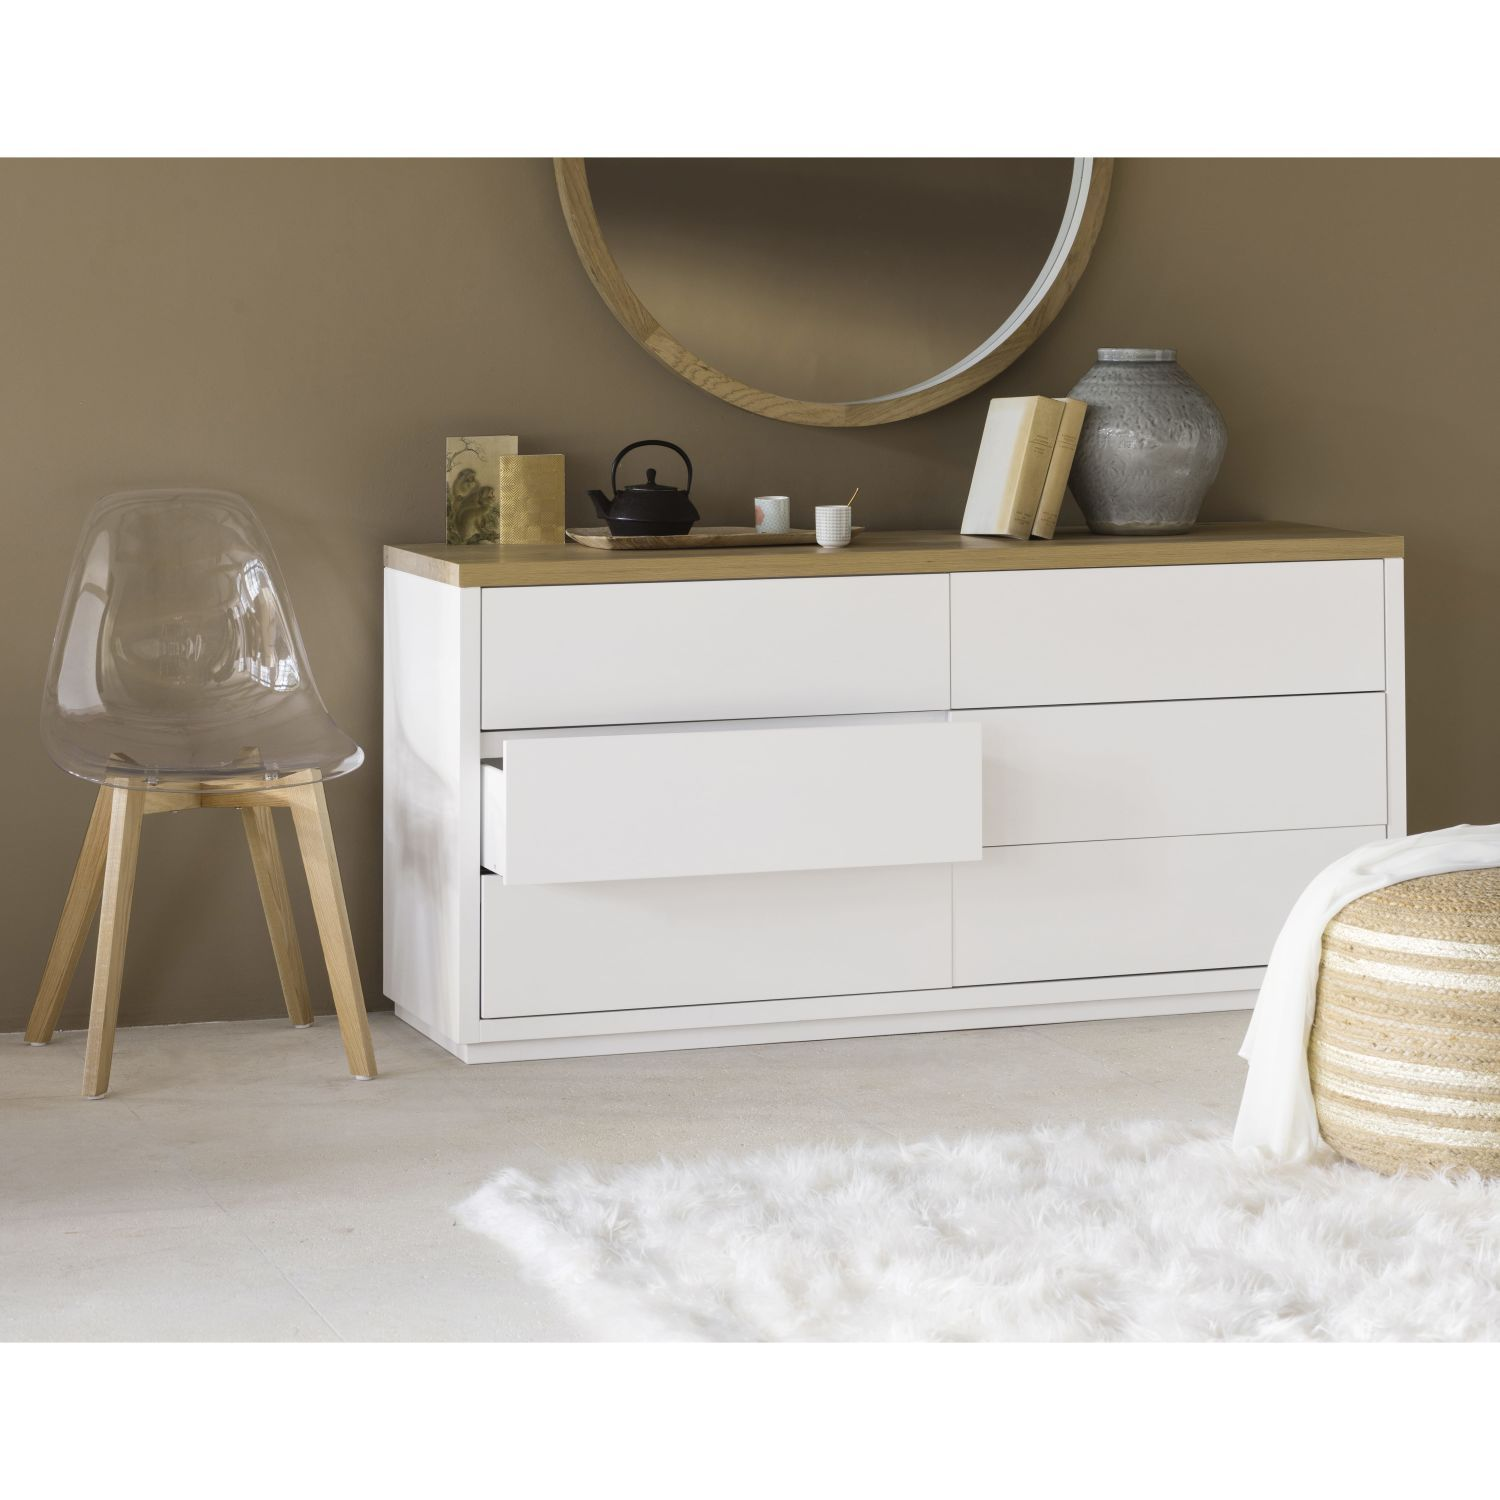 Ikea Commode Blanche Commode Blanche 6 Tiroirs Ekkor 2019 Enterieur Chill Room